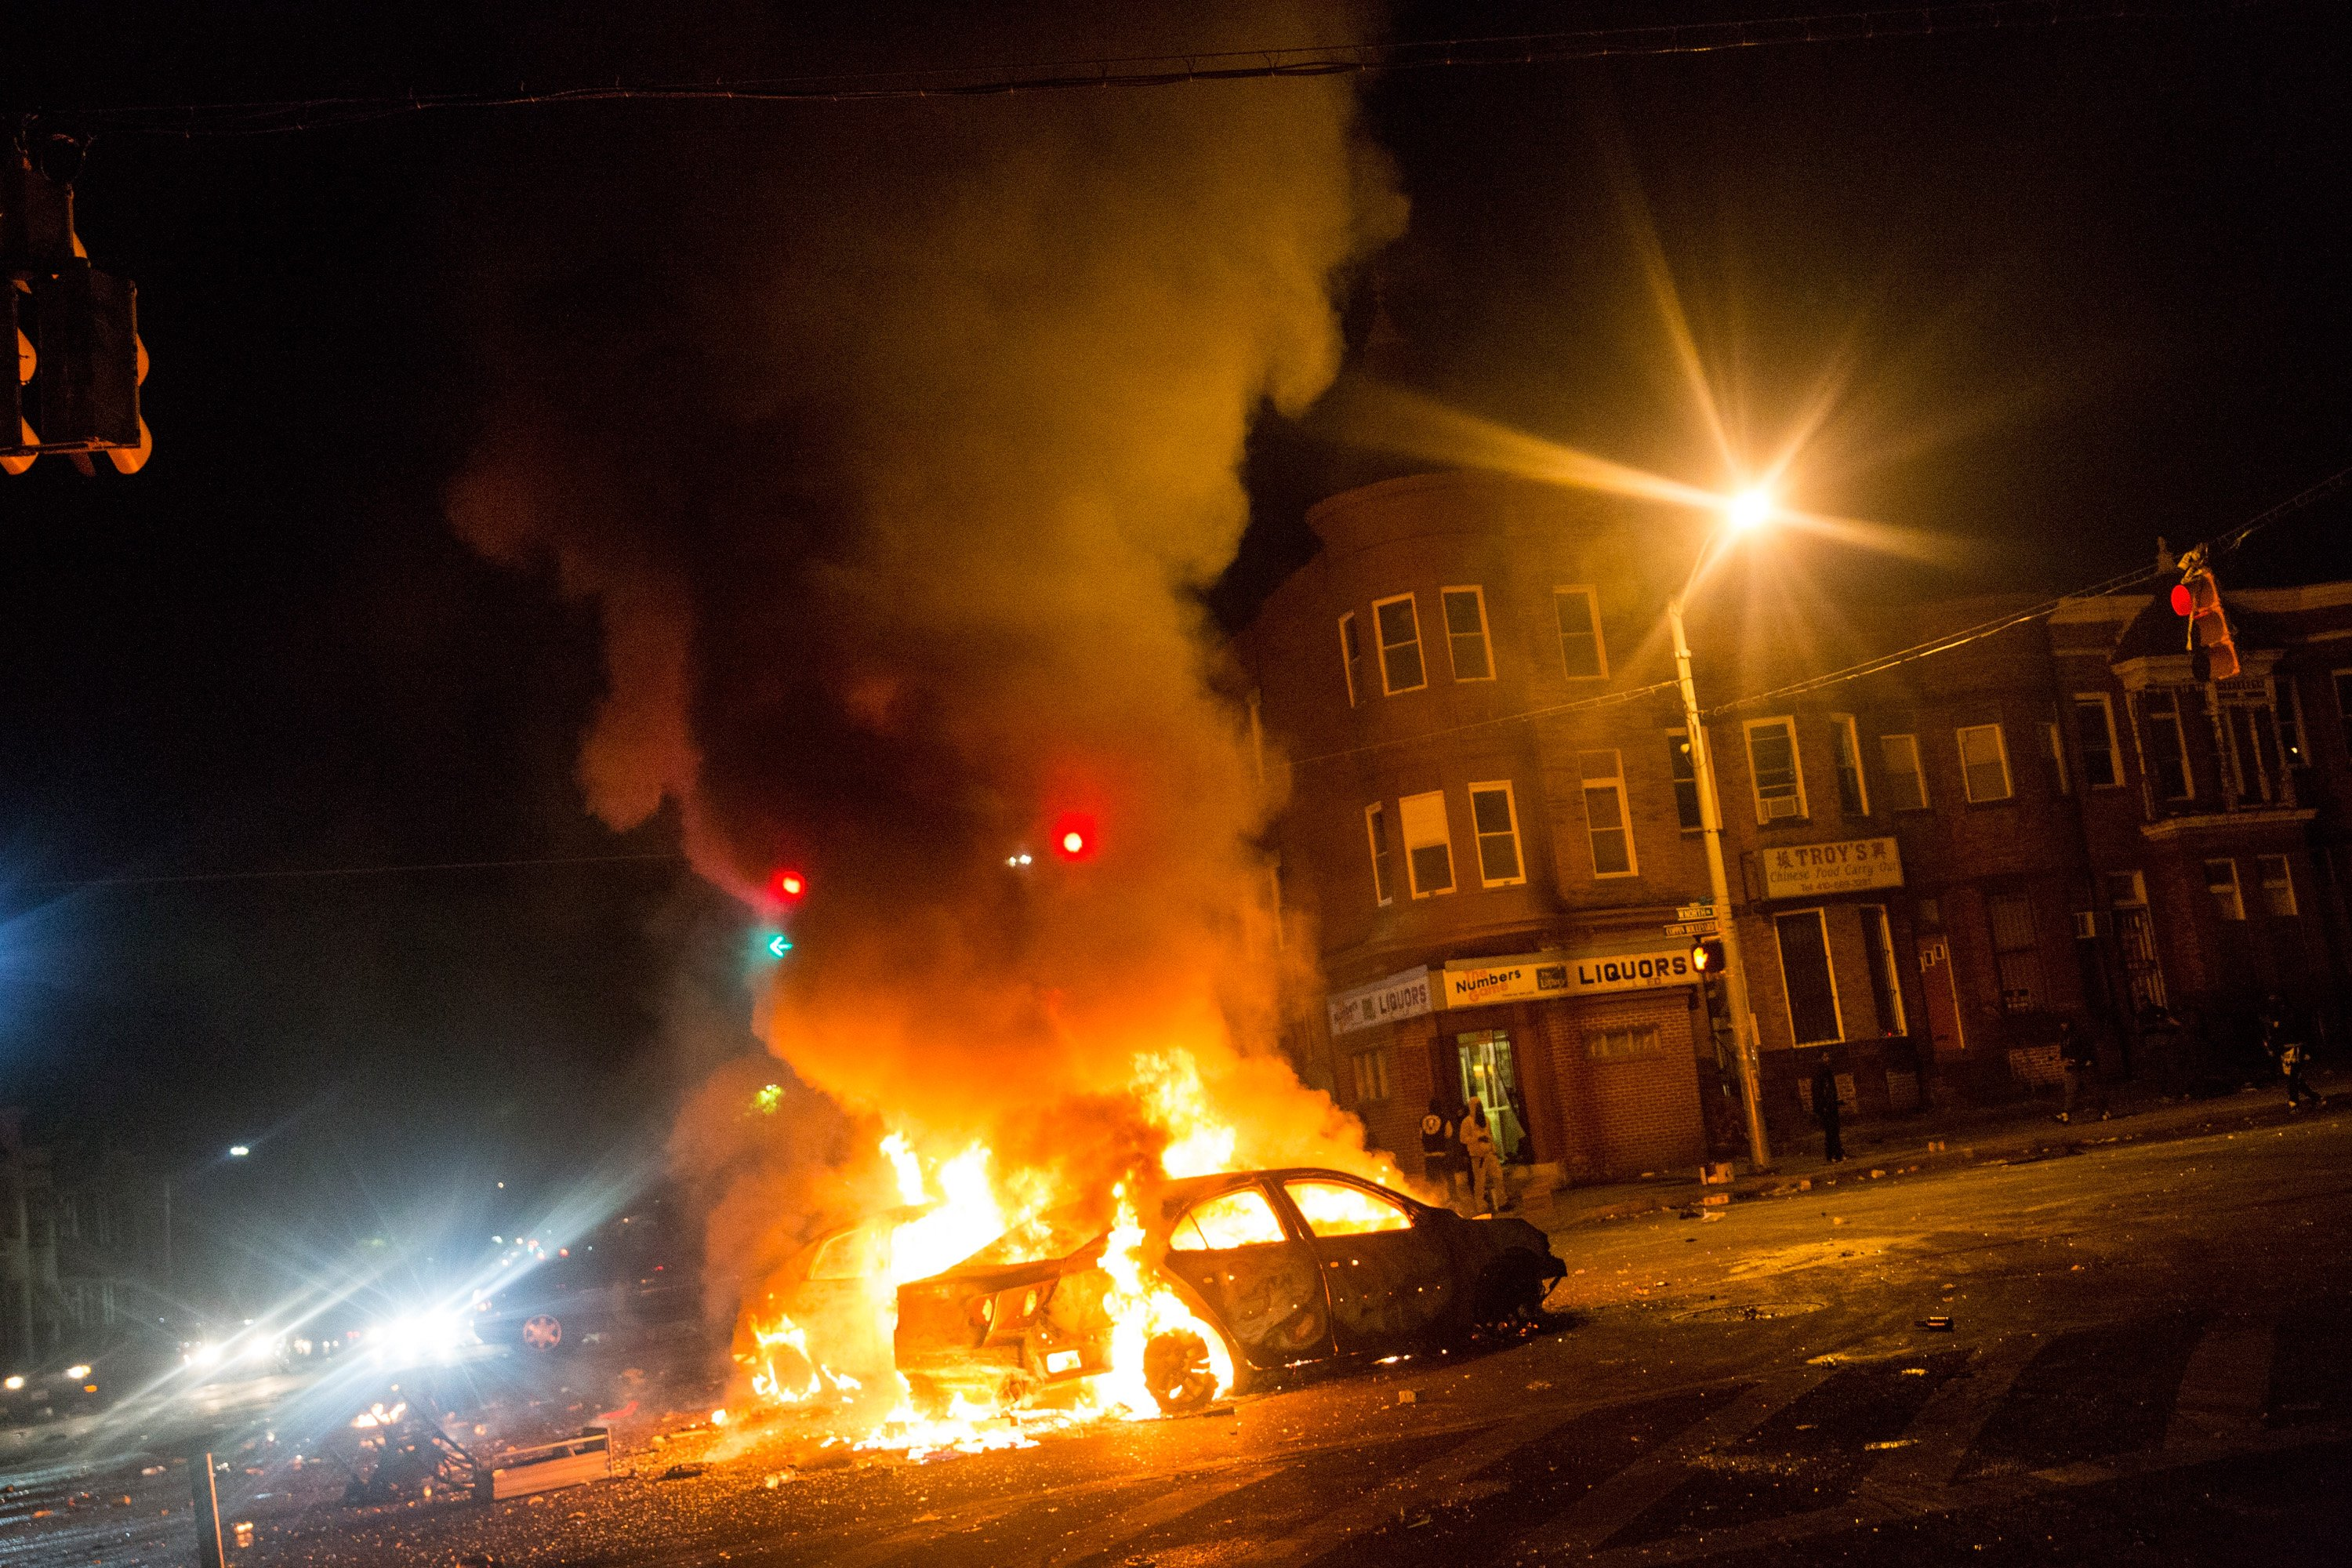 Two cars burn in the middle of an intersection during riots near New Shiloh Baptist Church in Baltimore on April 27, 2015.